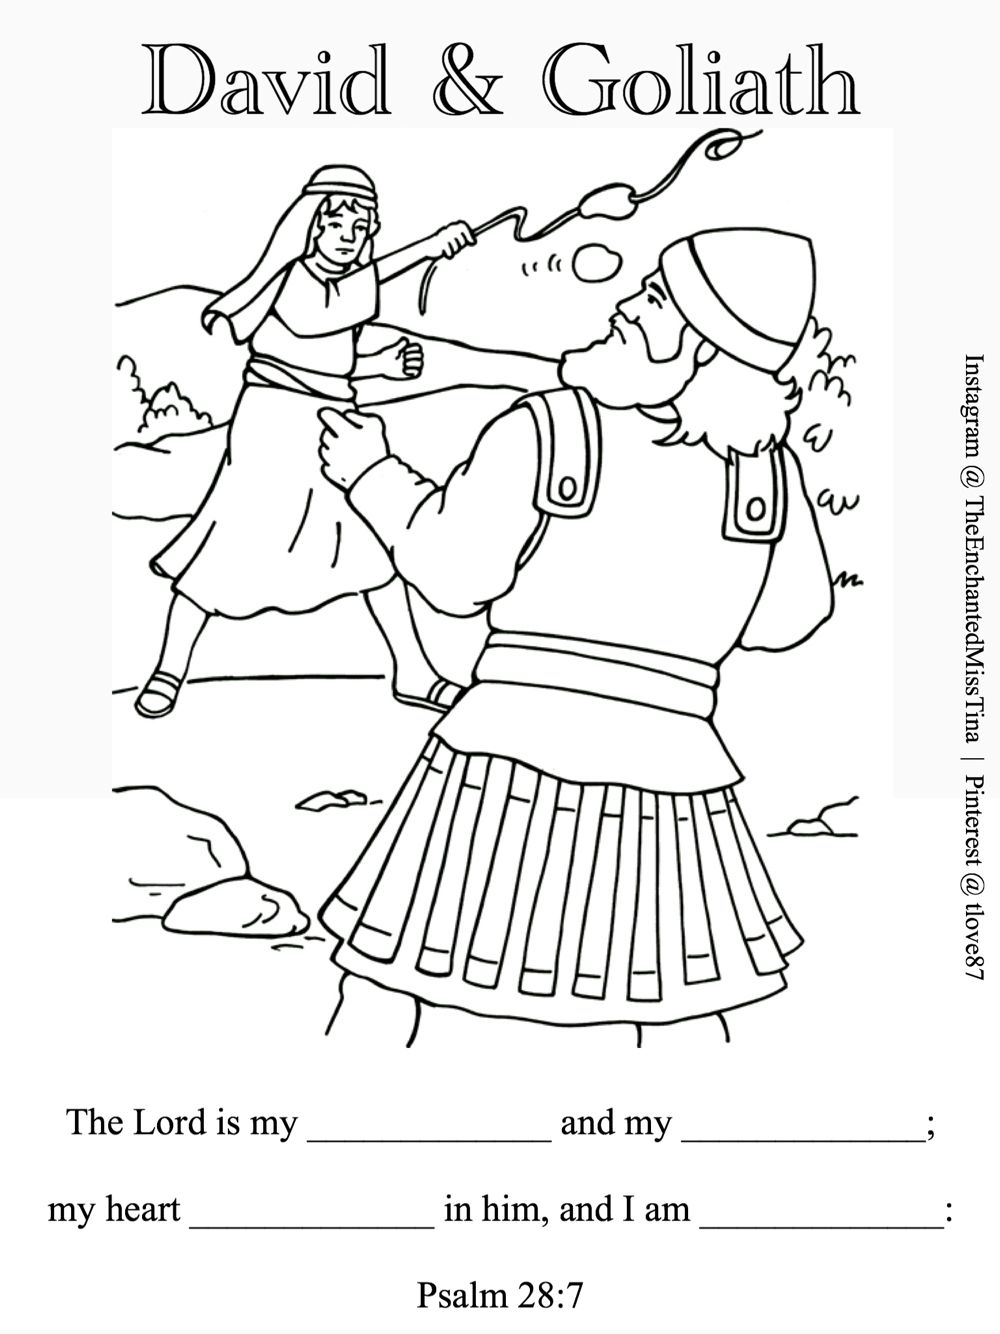 David and Goliath coloring page. Psalm 287 fill in memory